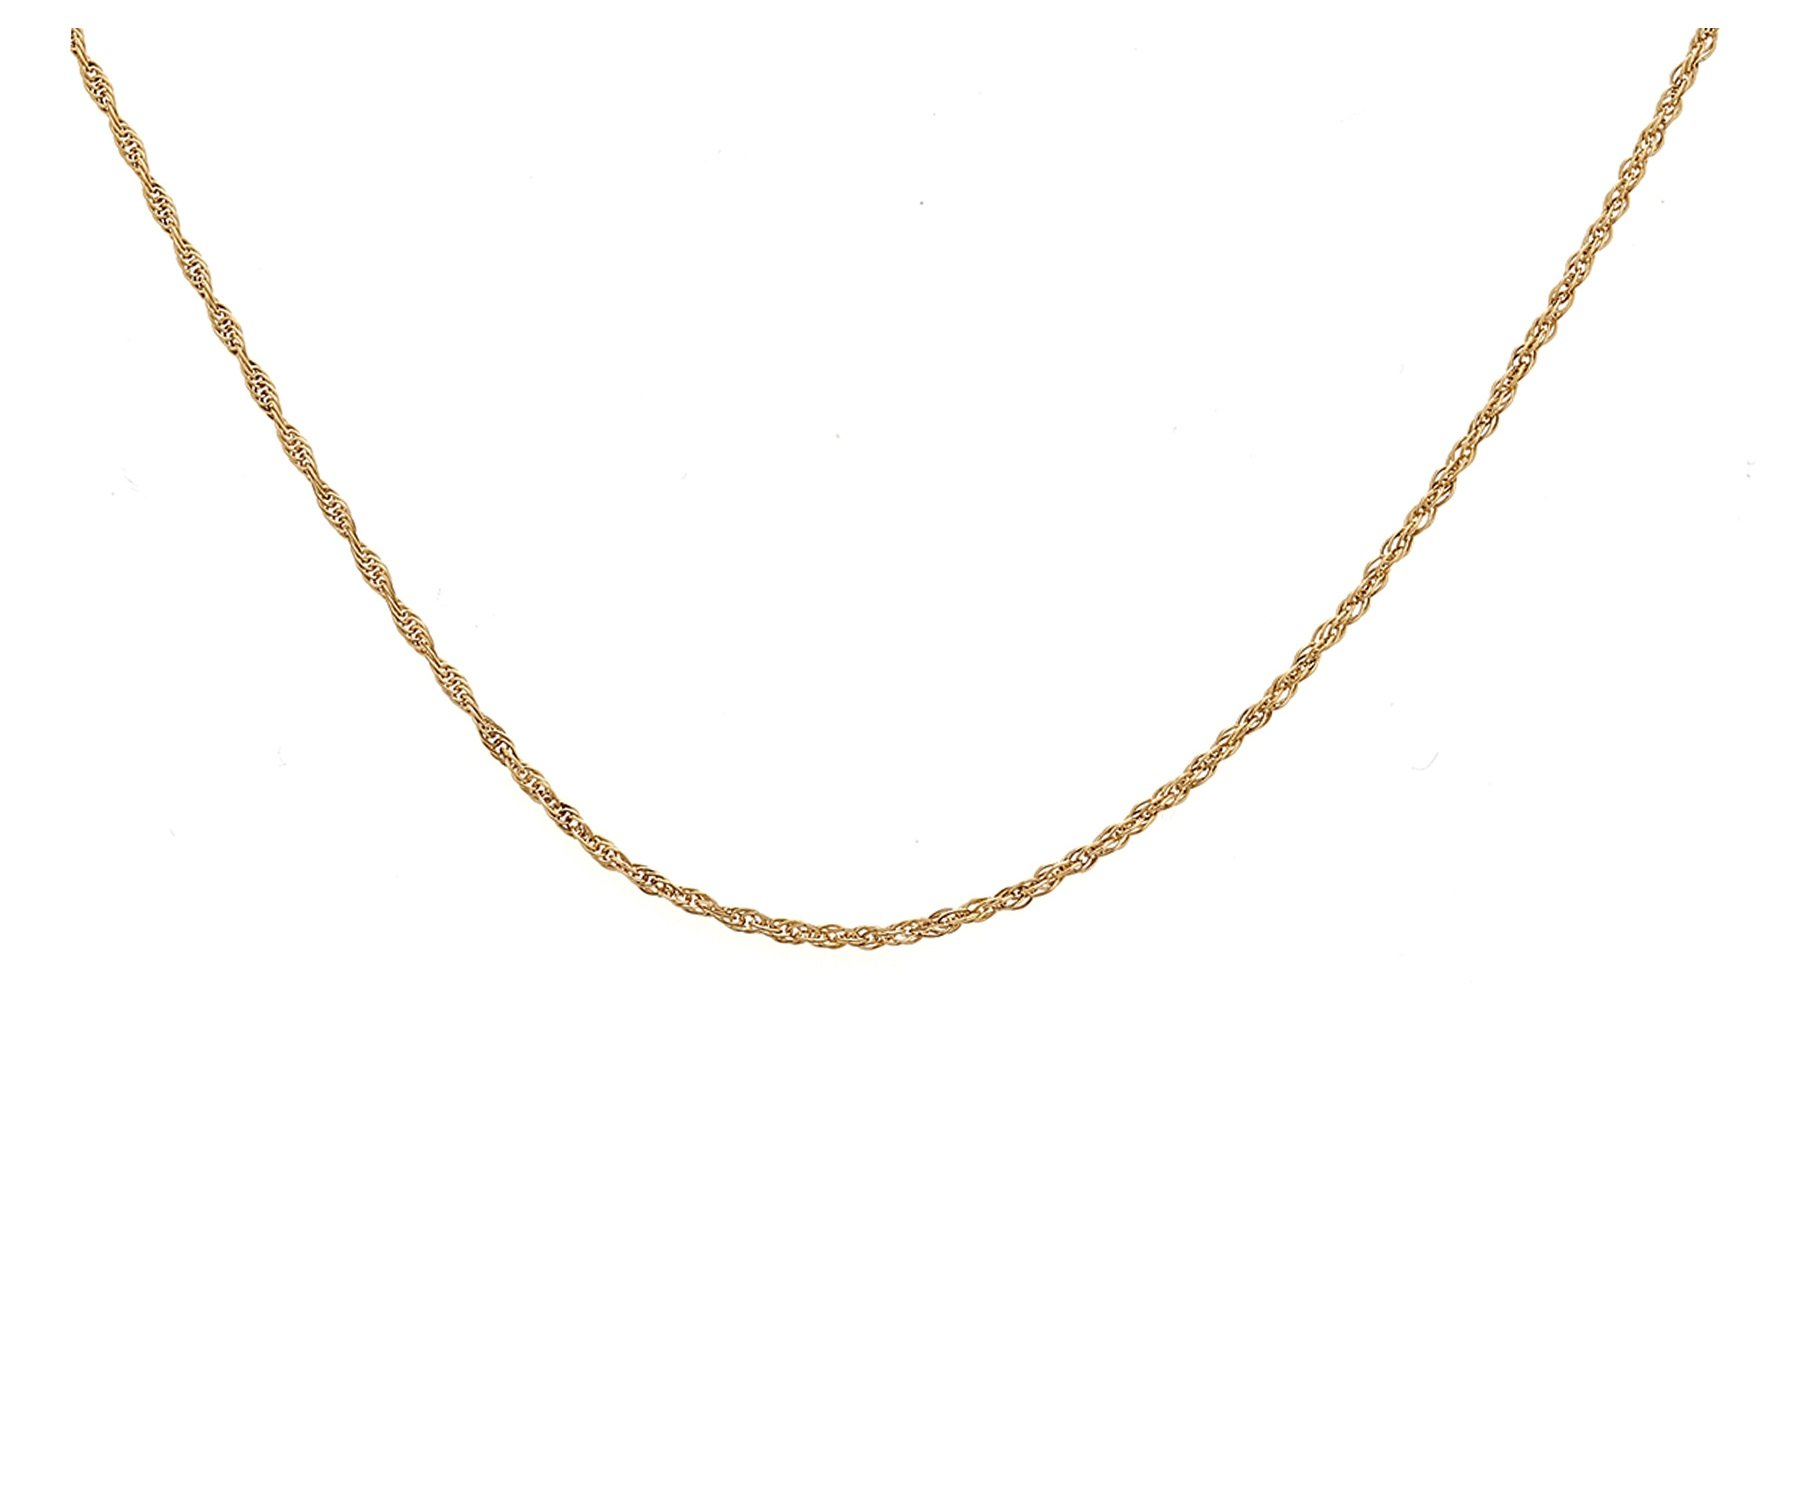 10K Solid Yellow Gold Diamond Cut Loose Rope Chain Necklace- 1MM thick all lengths available 15''-30'' (30)